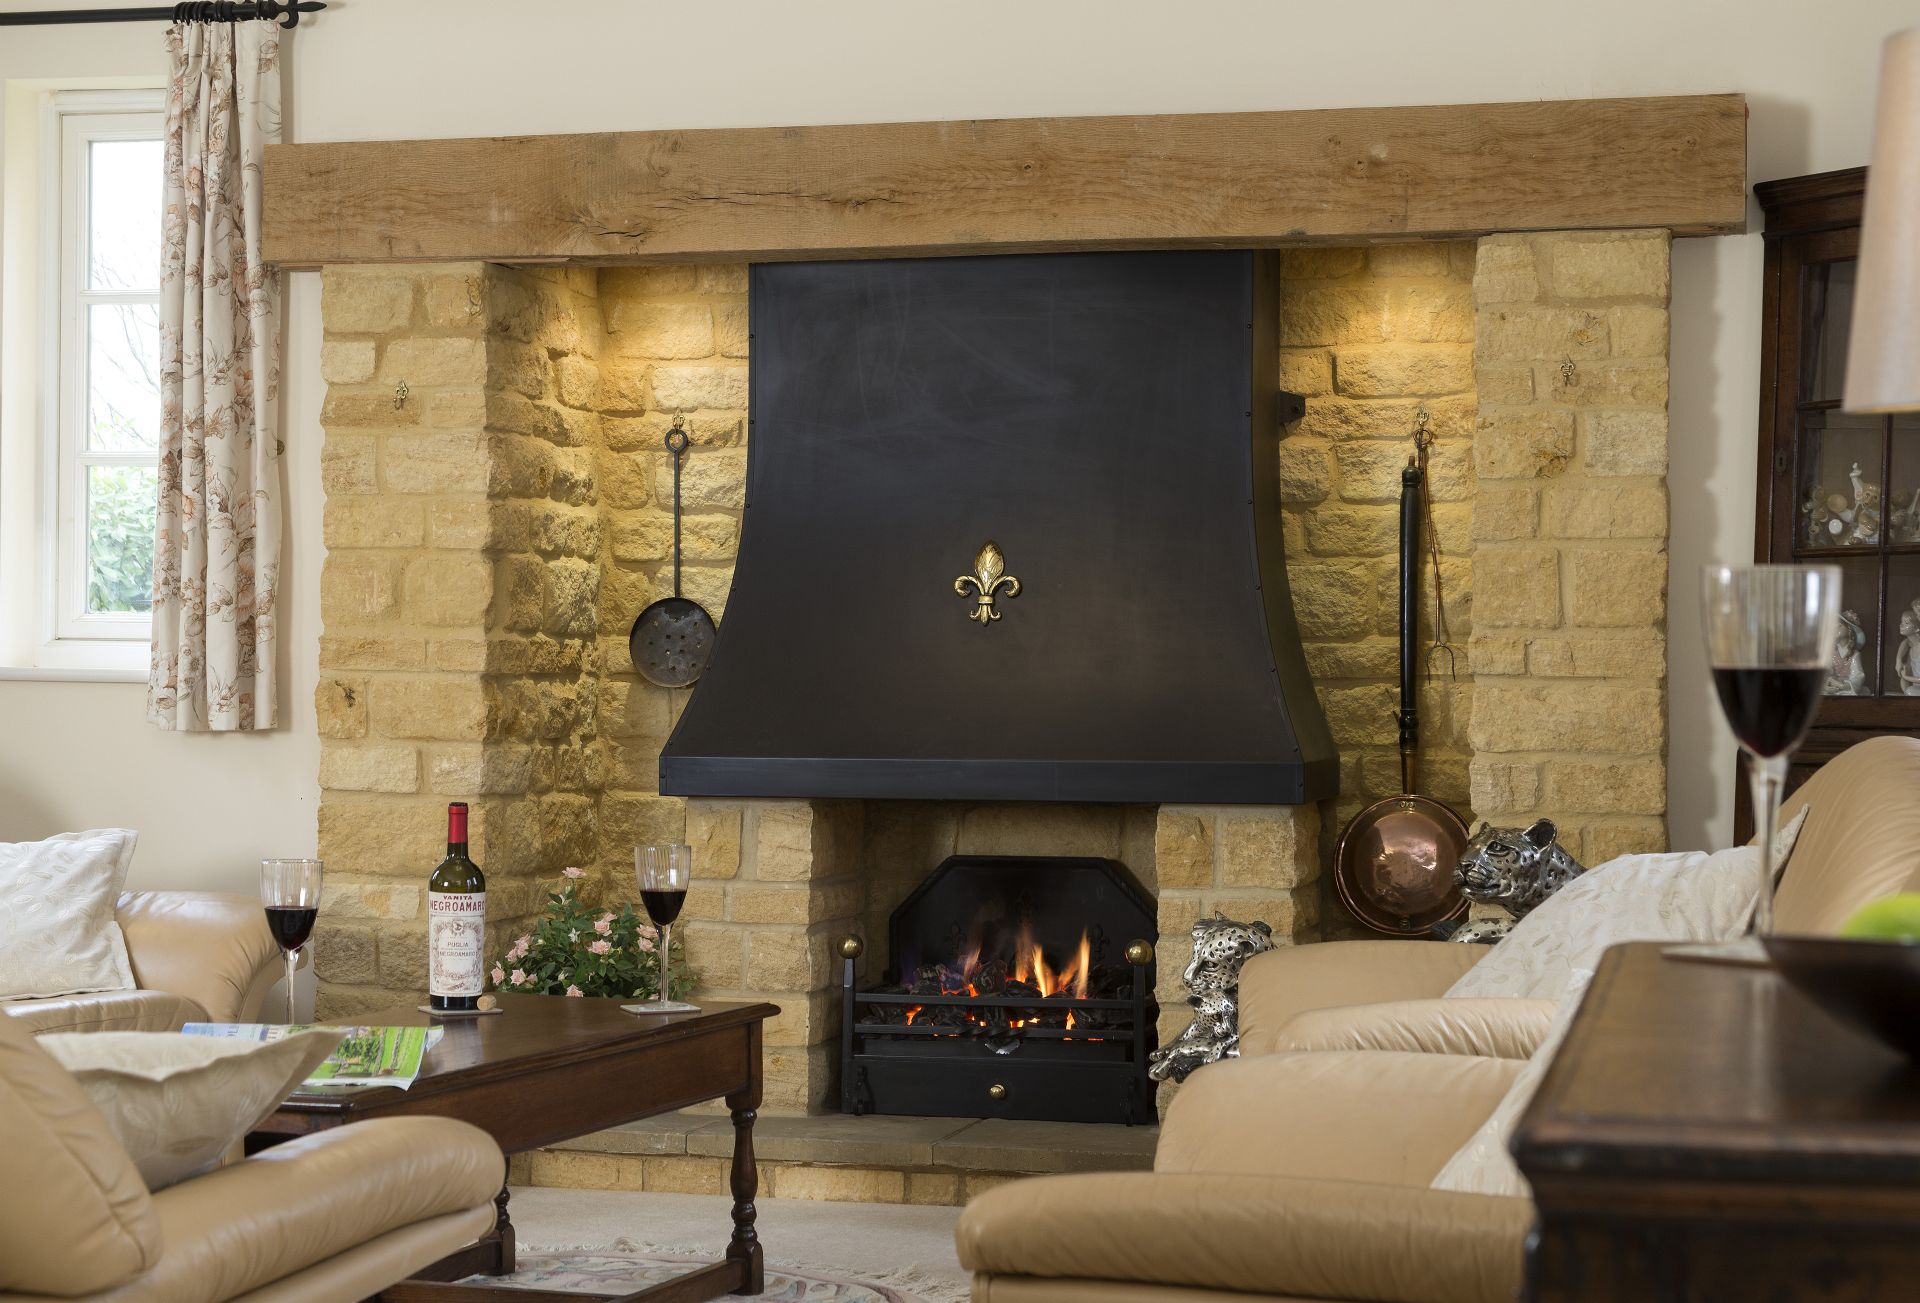 Enjoy a cosy evening by the fire in the sitting room